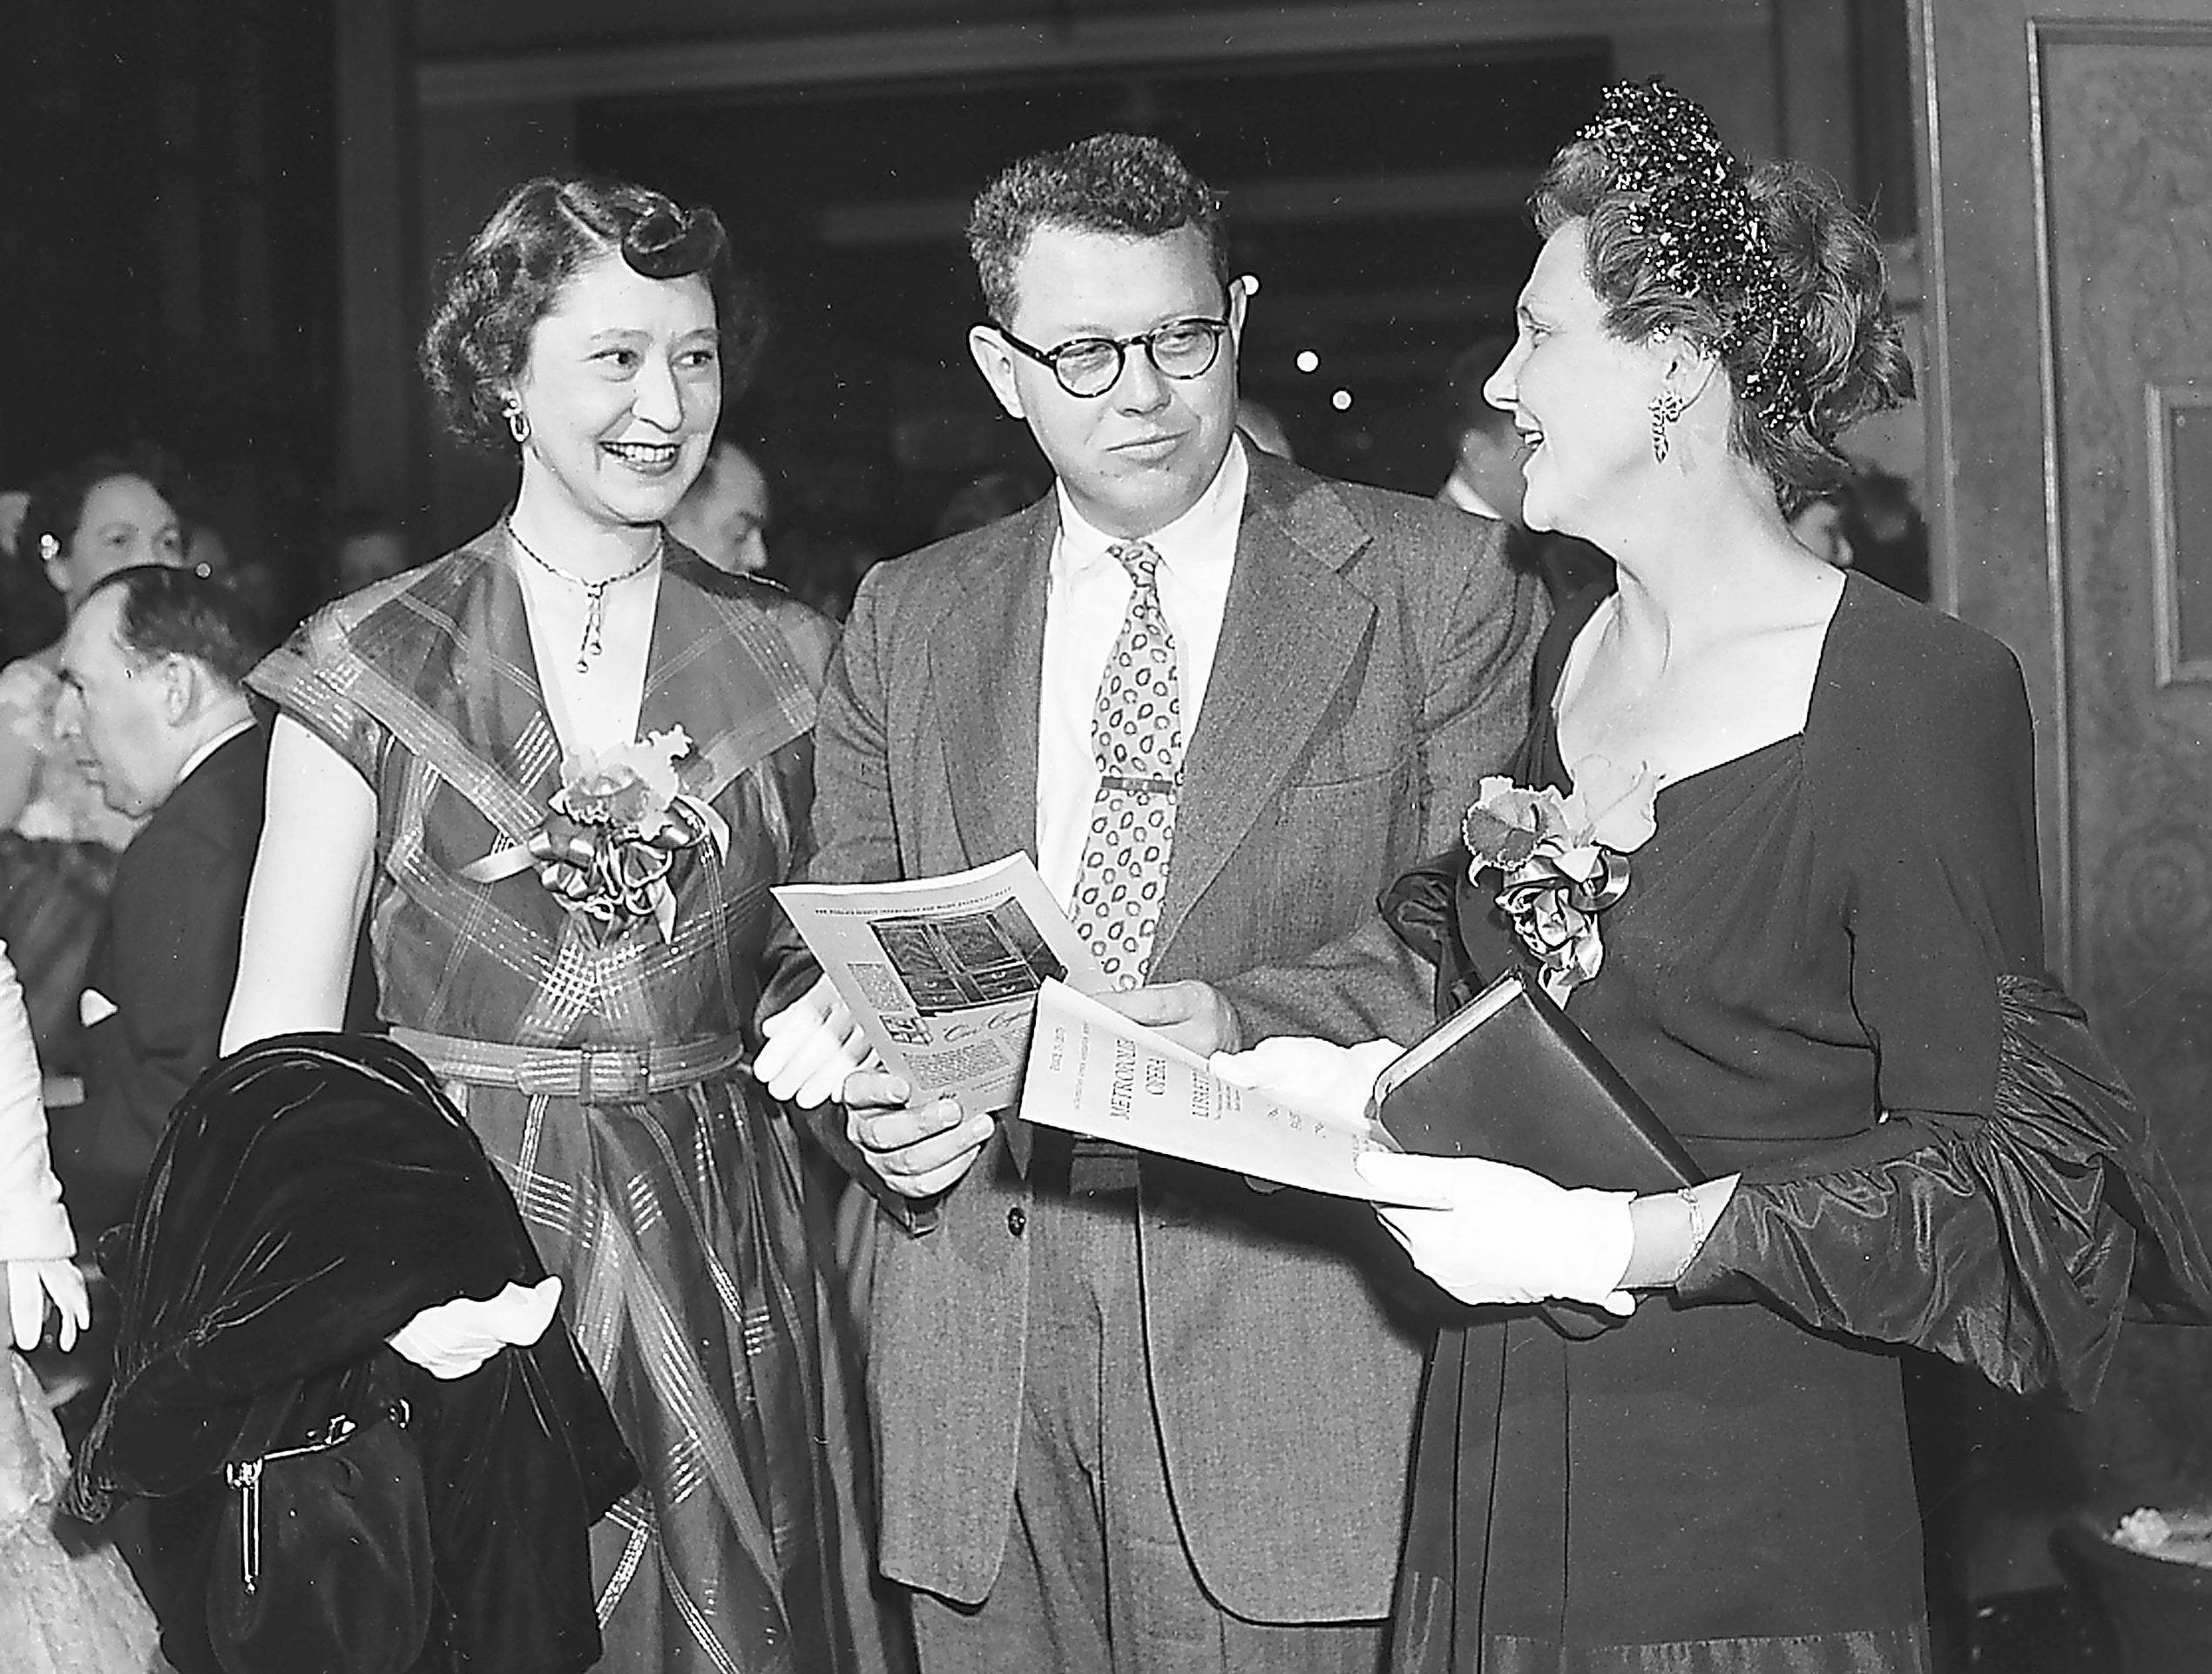 Many out-of-town visitors timed their April 1951 trips to Memphis to include the opera and among them was Mrs. Alfred F. Dantzler Jr. (Right) of Pascagoula, MS, who is the house guest of Mr. and Mrs. Walter P. Armstrong. She chats with the Armstrongs in the lobby before curtain time.